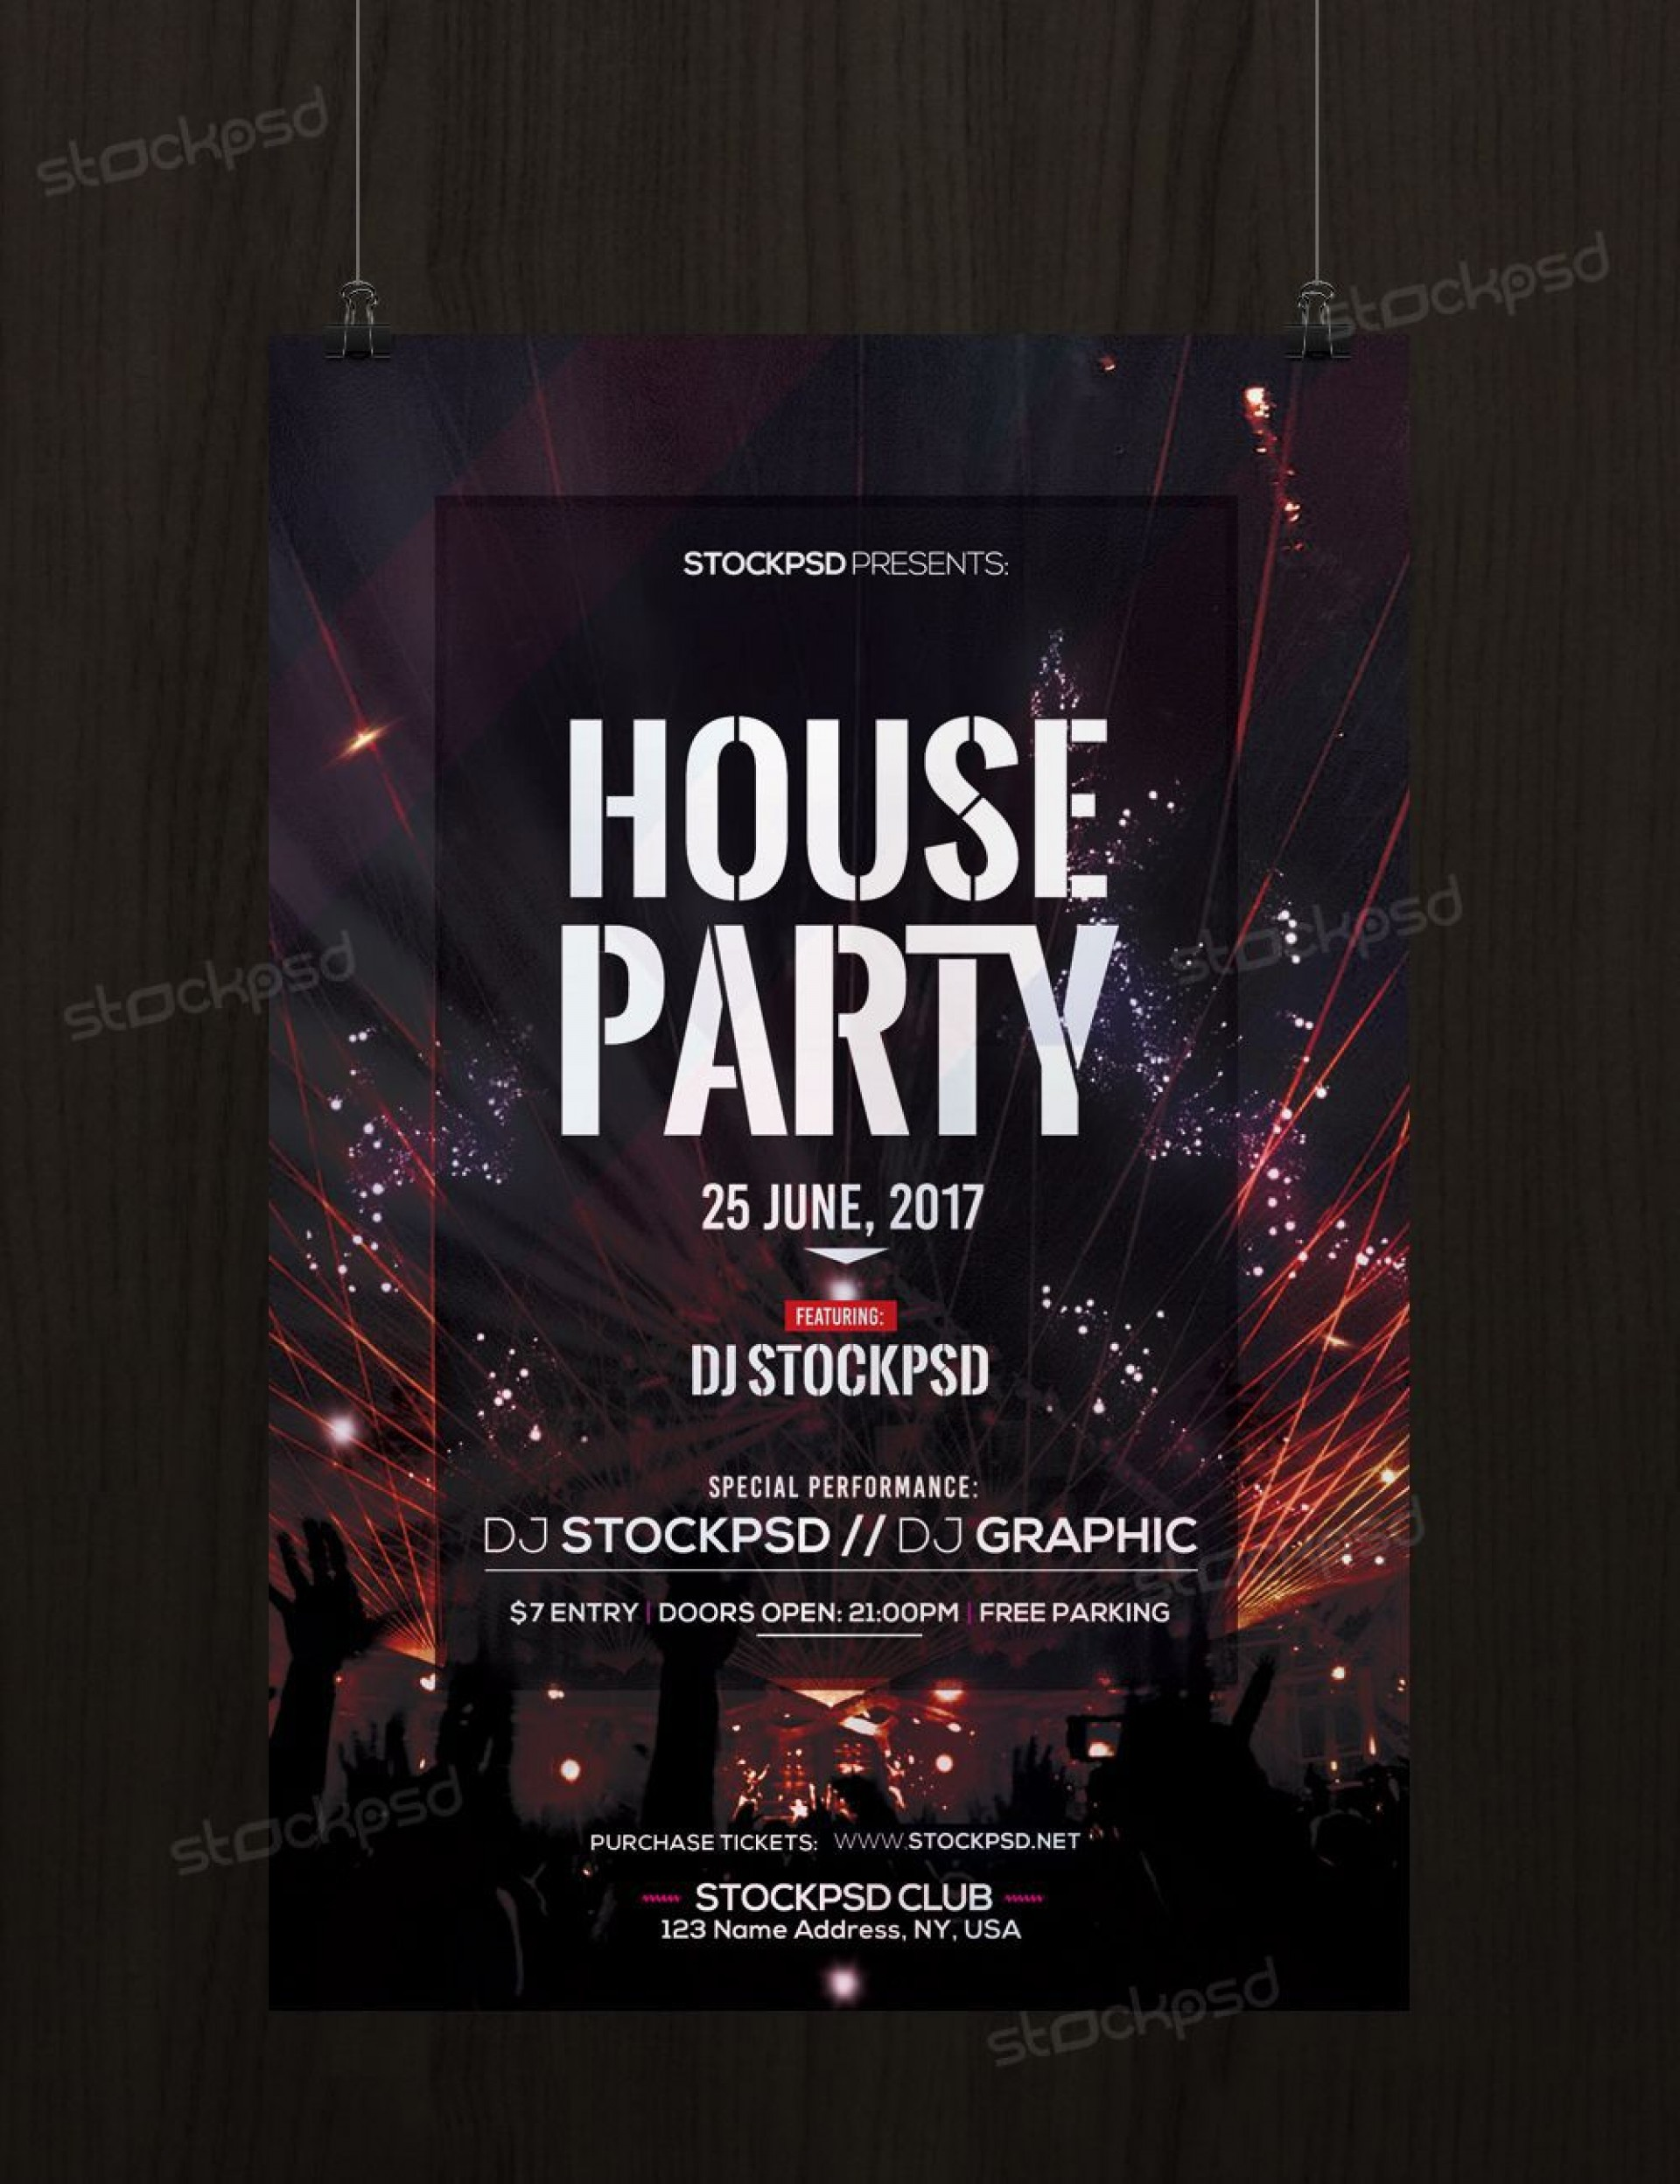 003 Rare Free Party Flyer Psd Template Download High Resolution  - Neon Glow1920